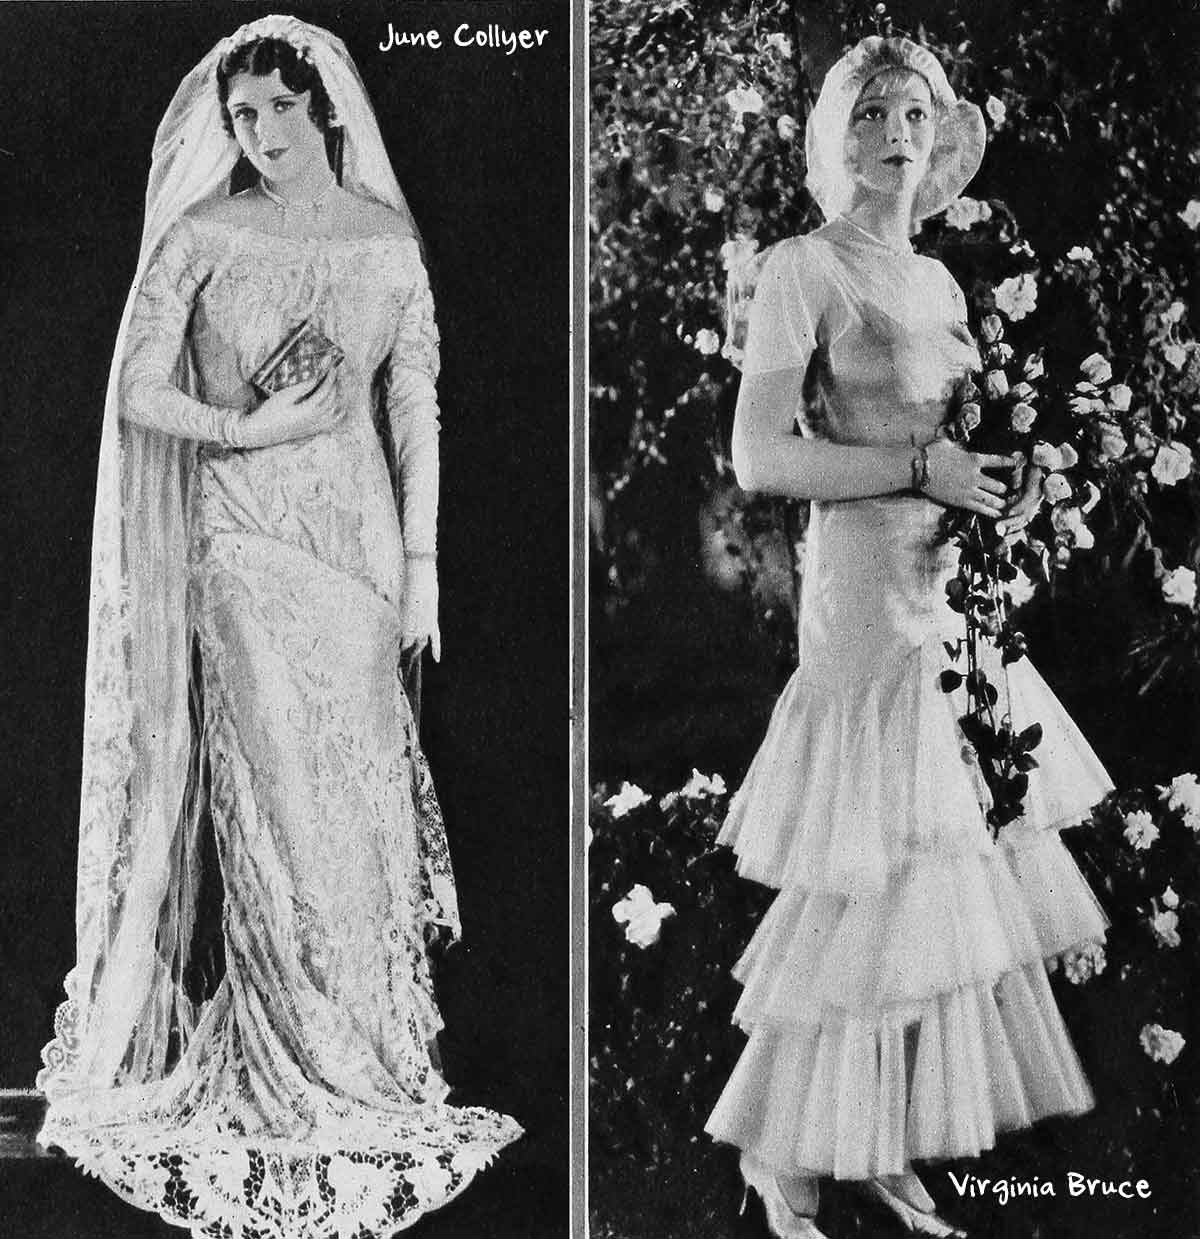 1930s-Fashion---Hollywood-Bridal-Costumes---June-Collyer-and-Virgina-bruce